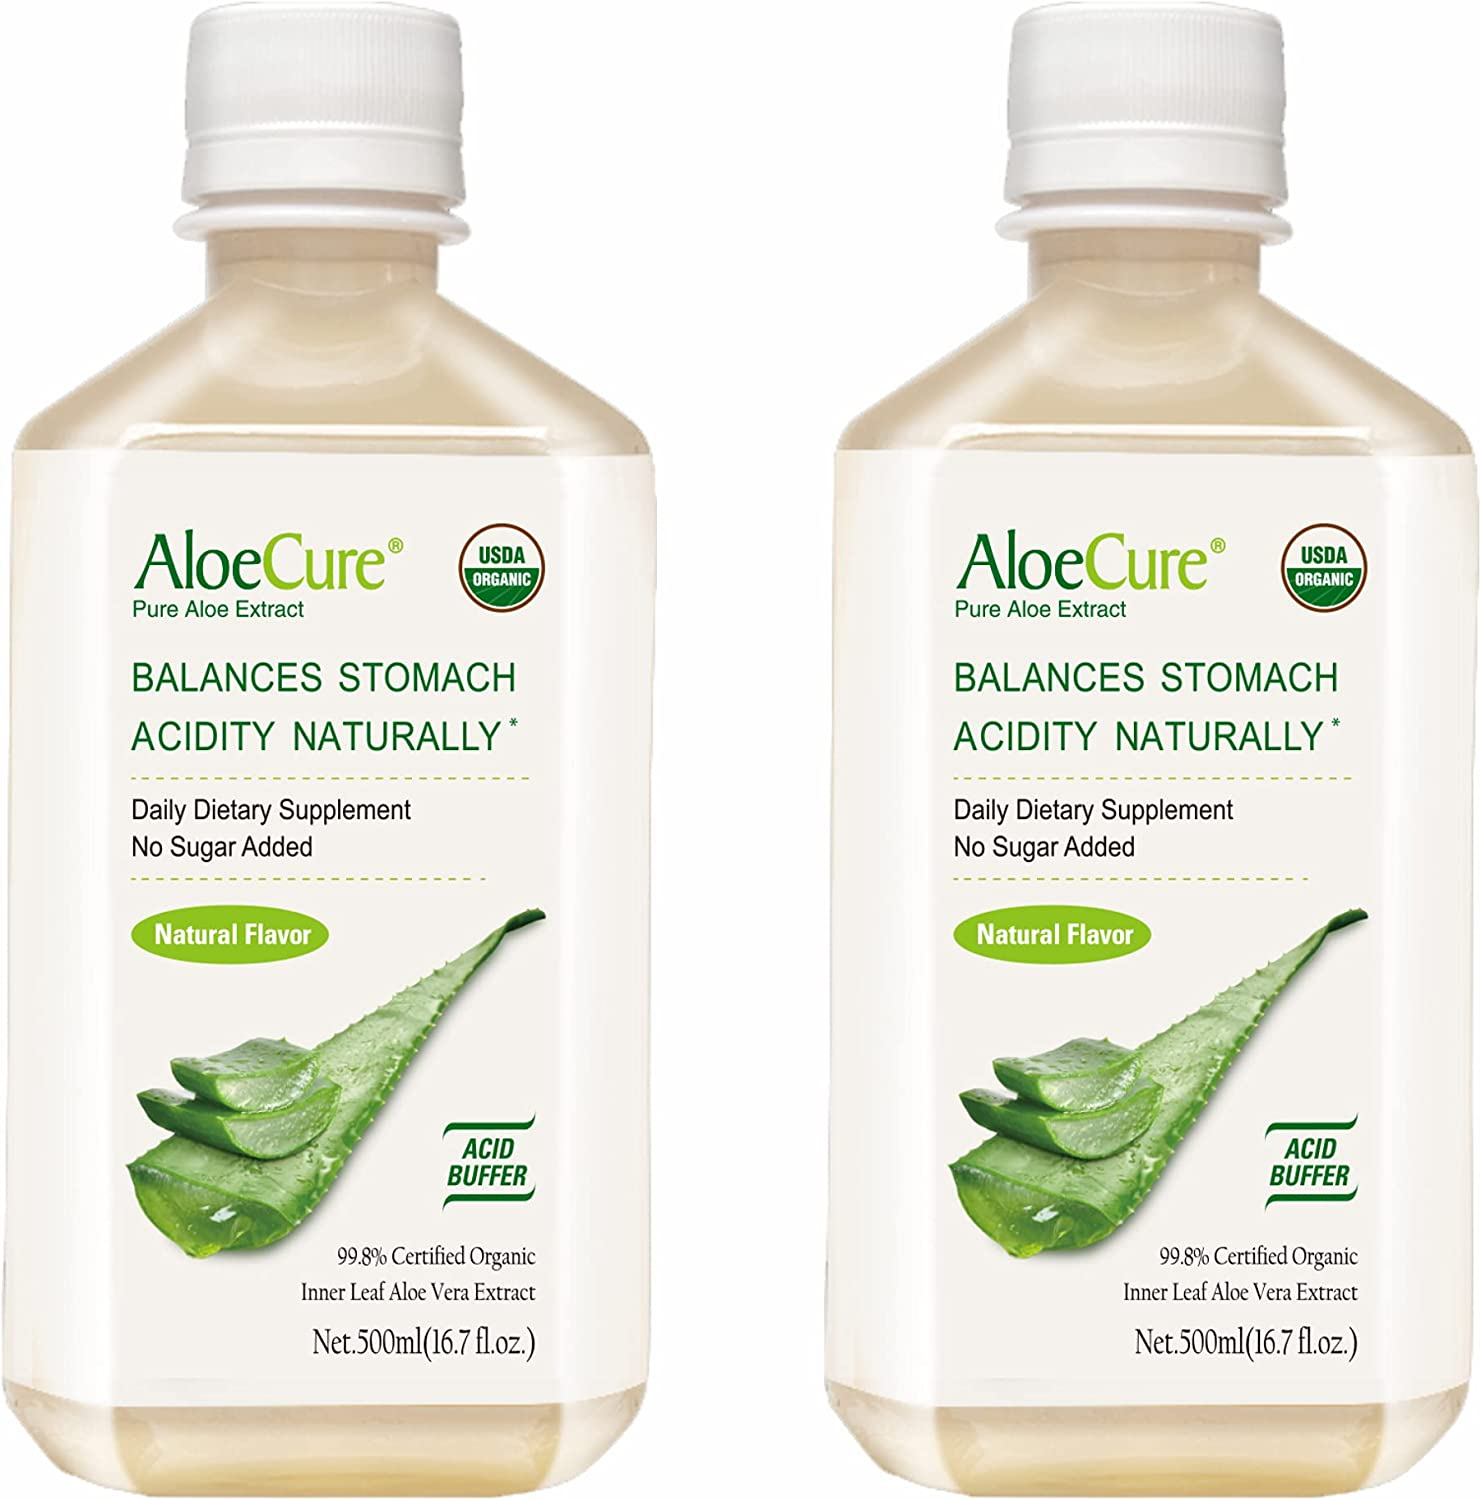 AloeCure Pure Aloe Vera Juice USDA Certified Organic, Natural Flavor Acid Buffer, 2x500ml Bottle, Processed Within 12 Hours of Harvest to Maximize Nutrients, No Charcoal Filtering-Inner Leaf : Health & Household